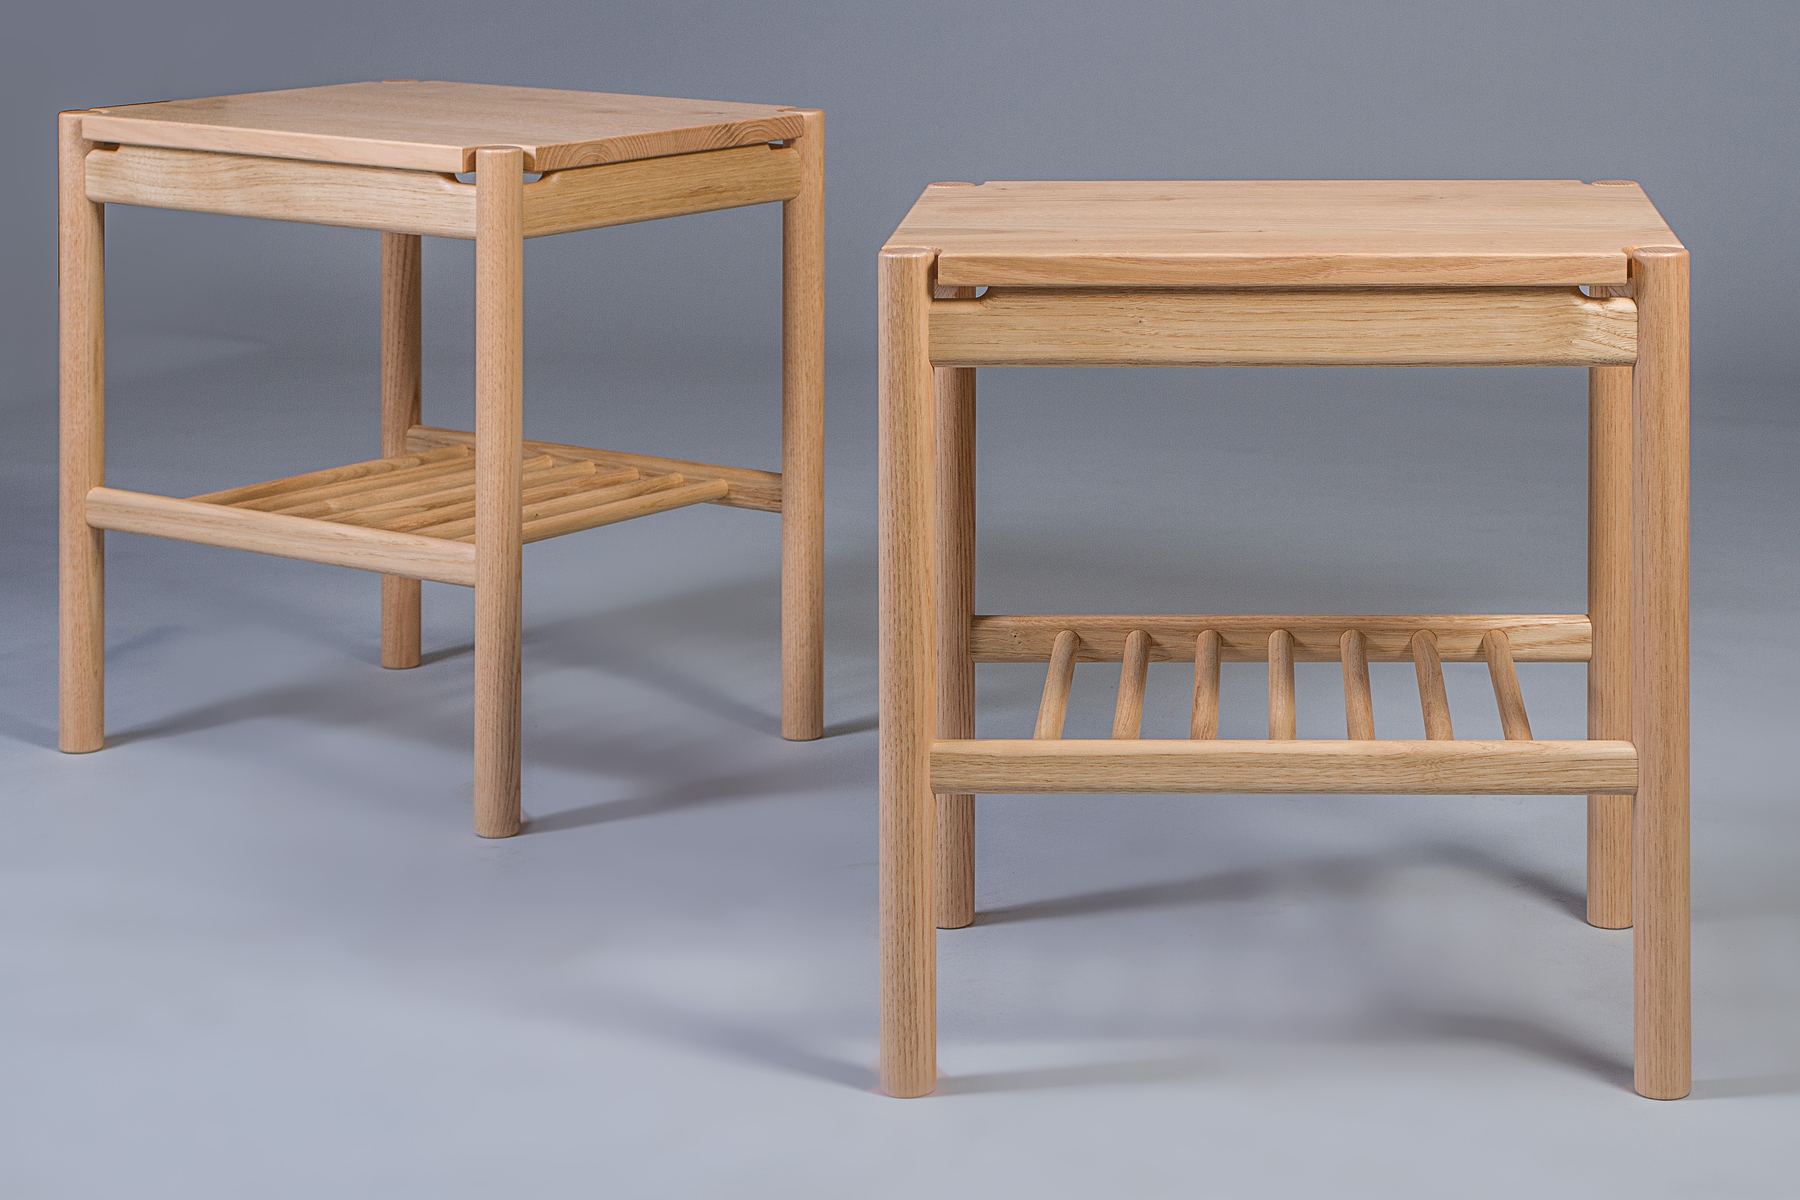 Bedside night stands handmade in English sweet chestnut